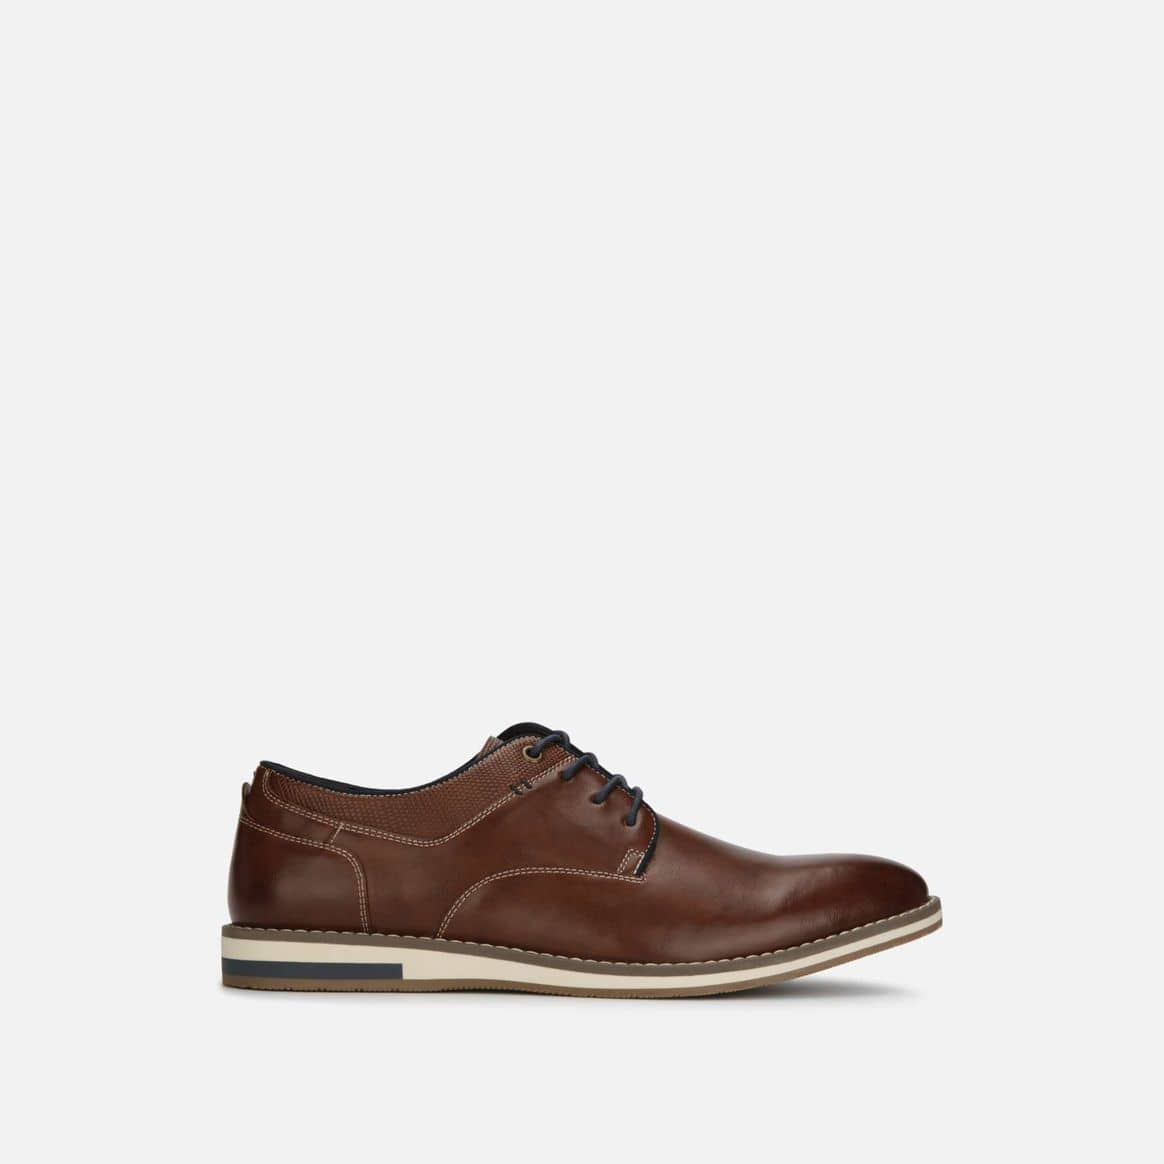 fb2ce097078 Kenneth Cole Footwear Sale: Up to 90% Off Shoes (Men's from $12 ...